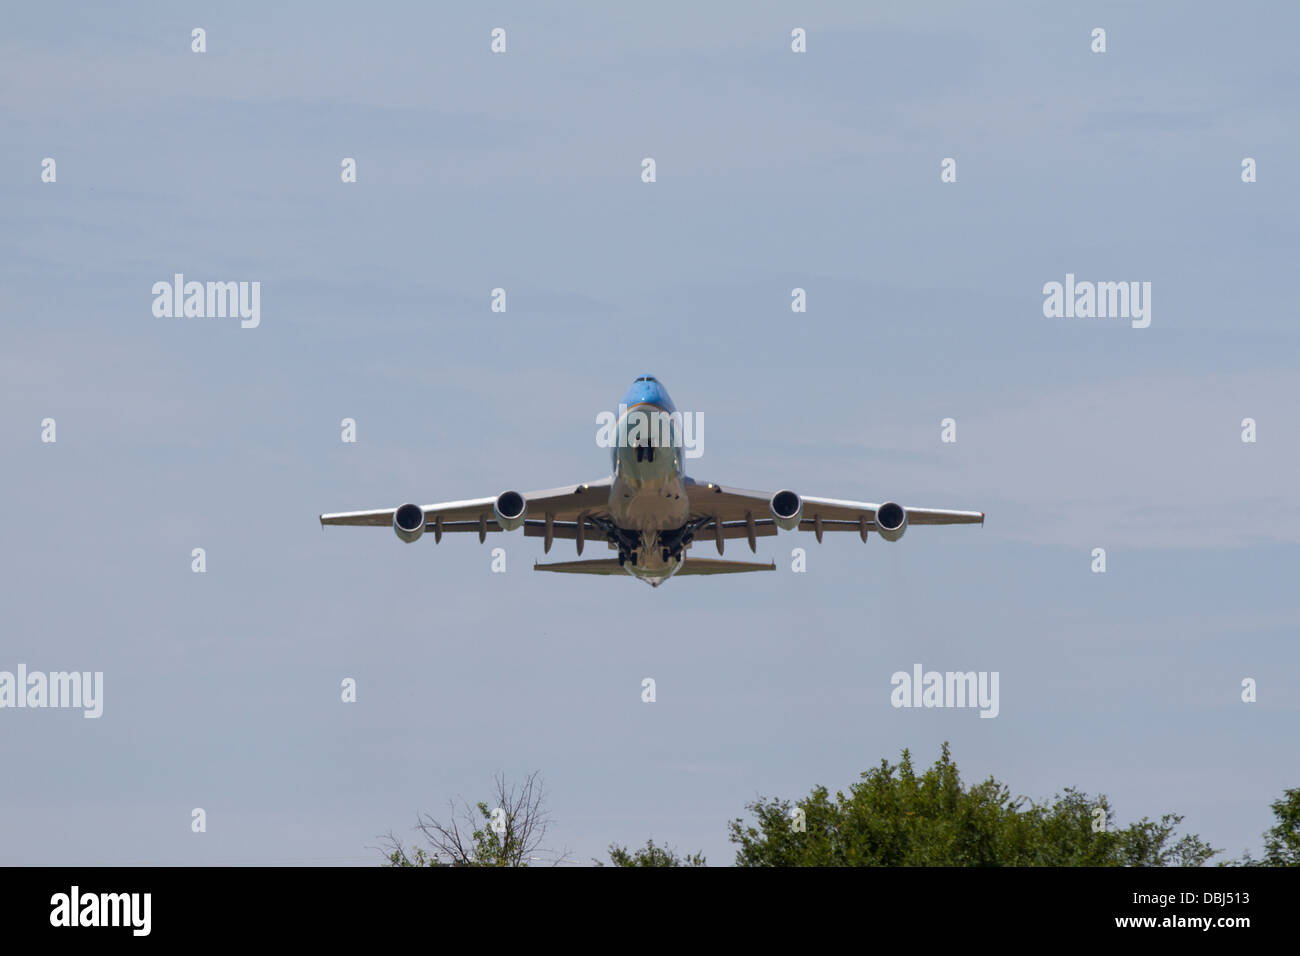 Air Force One on take off from Chattanooga, Tennessee. - Stock Image